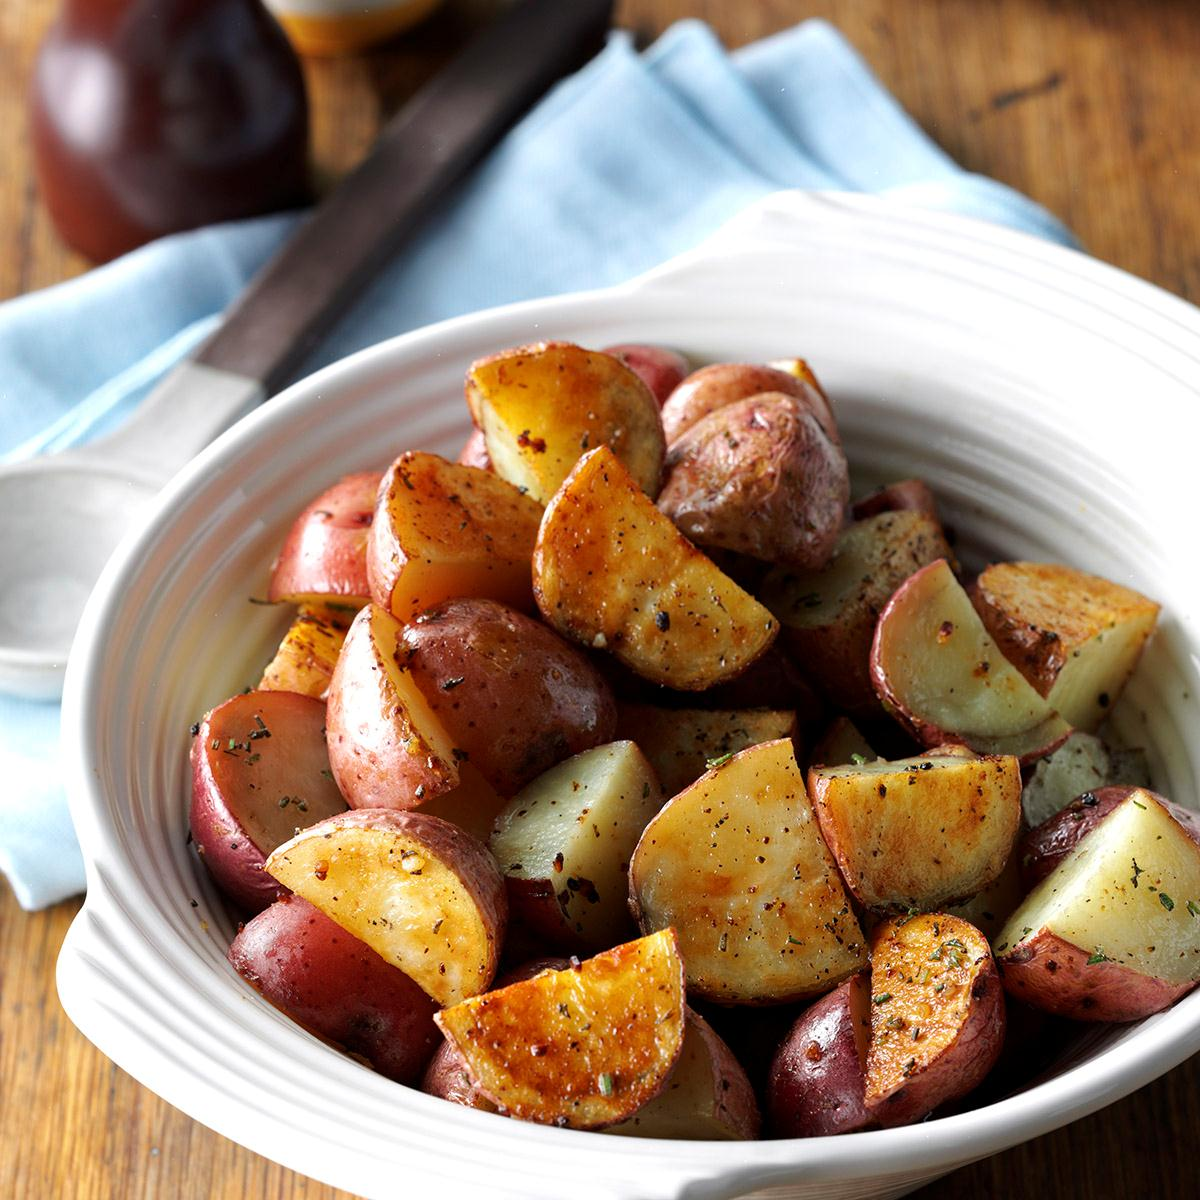 Family Style Red Potatoes - Serves 4